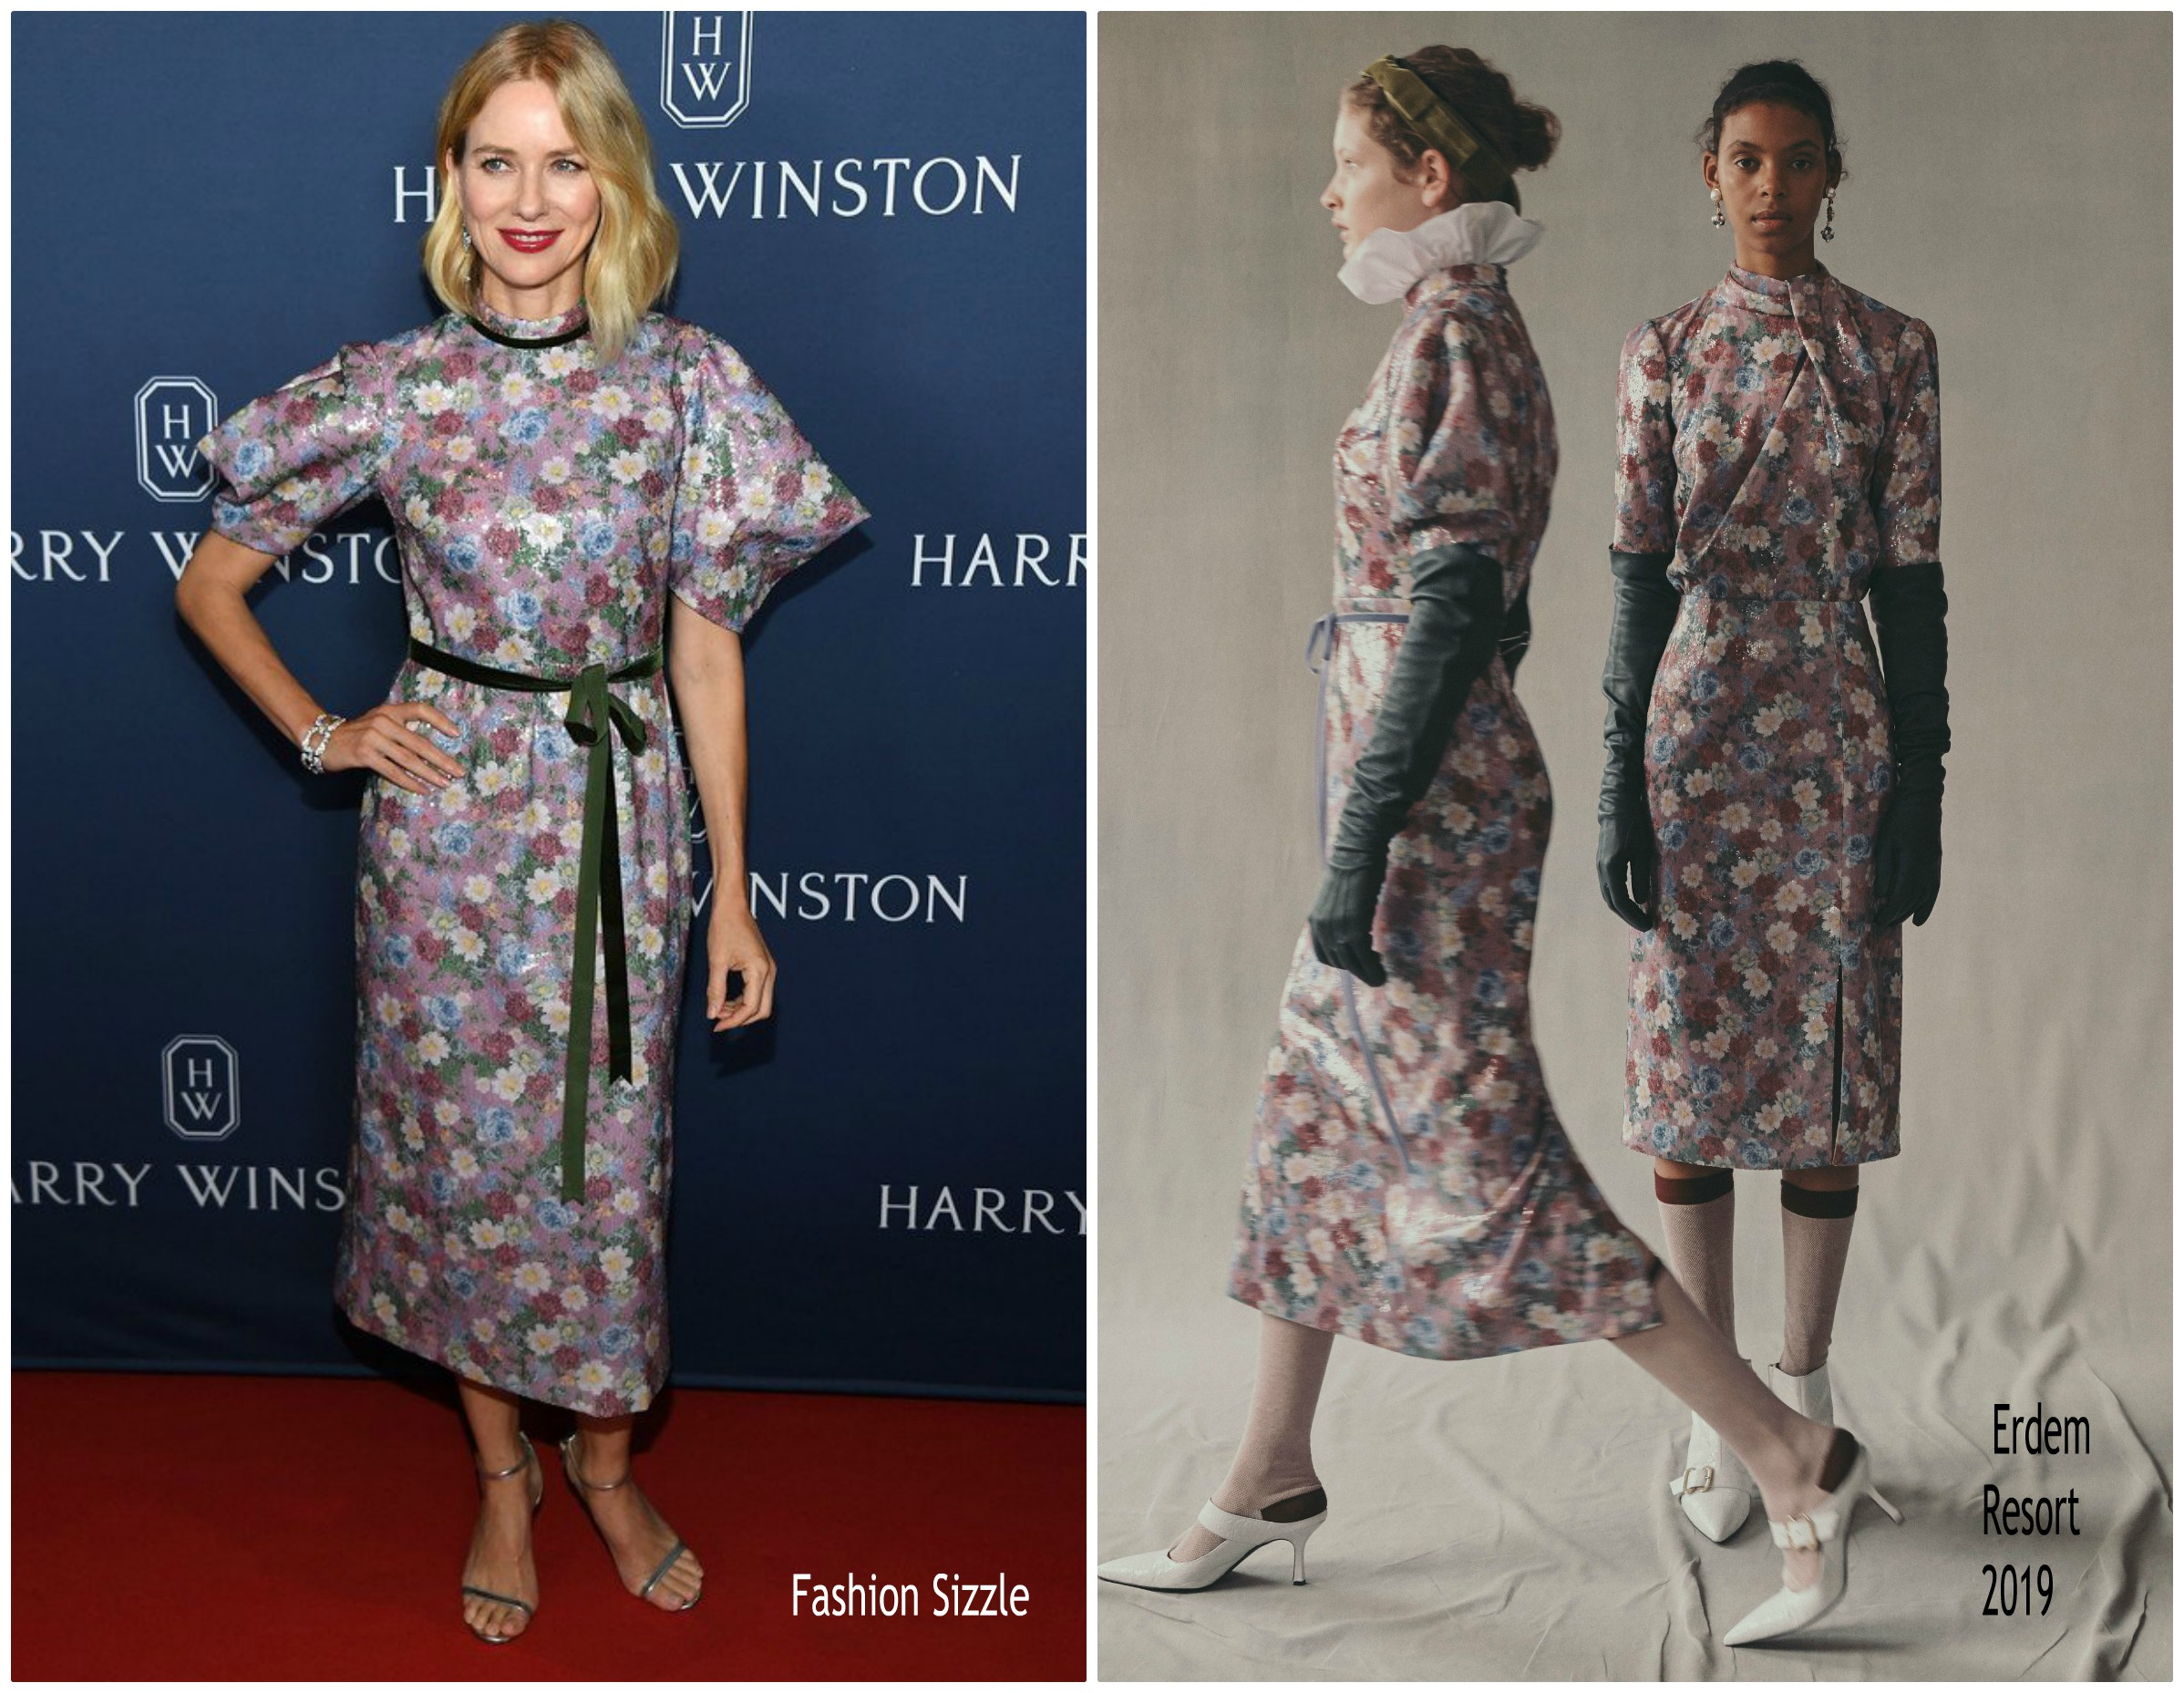 naomi-watts-in-erdem-harry-winston-unveils-new-york-collection